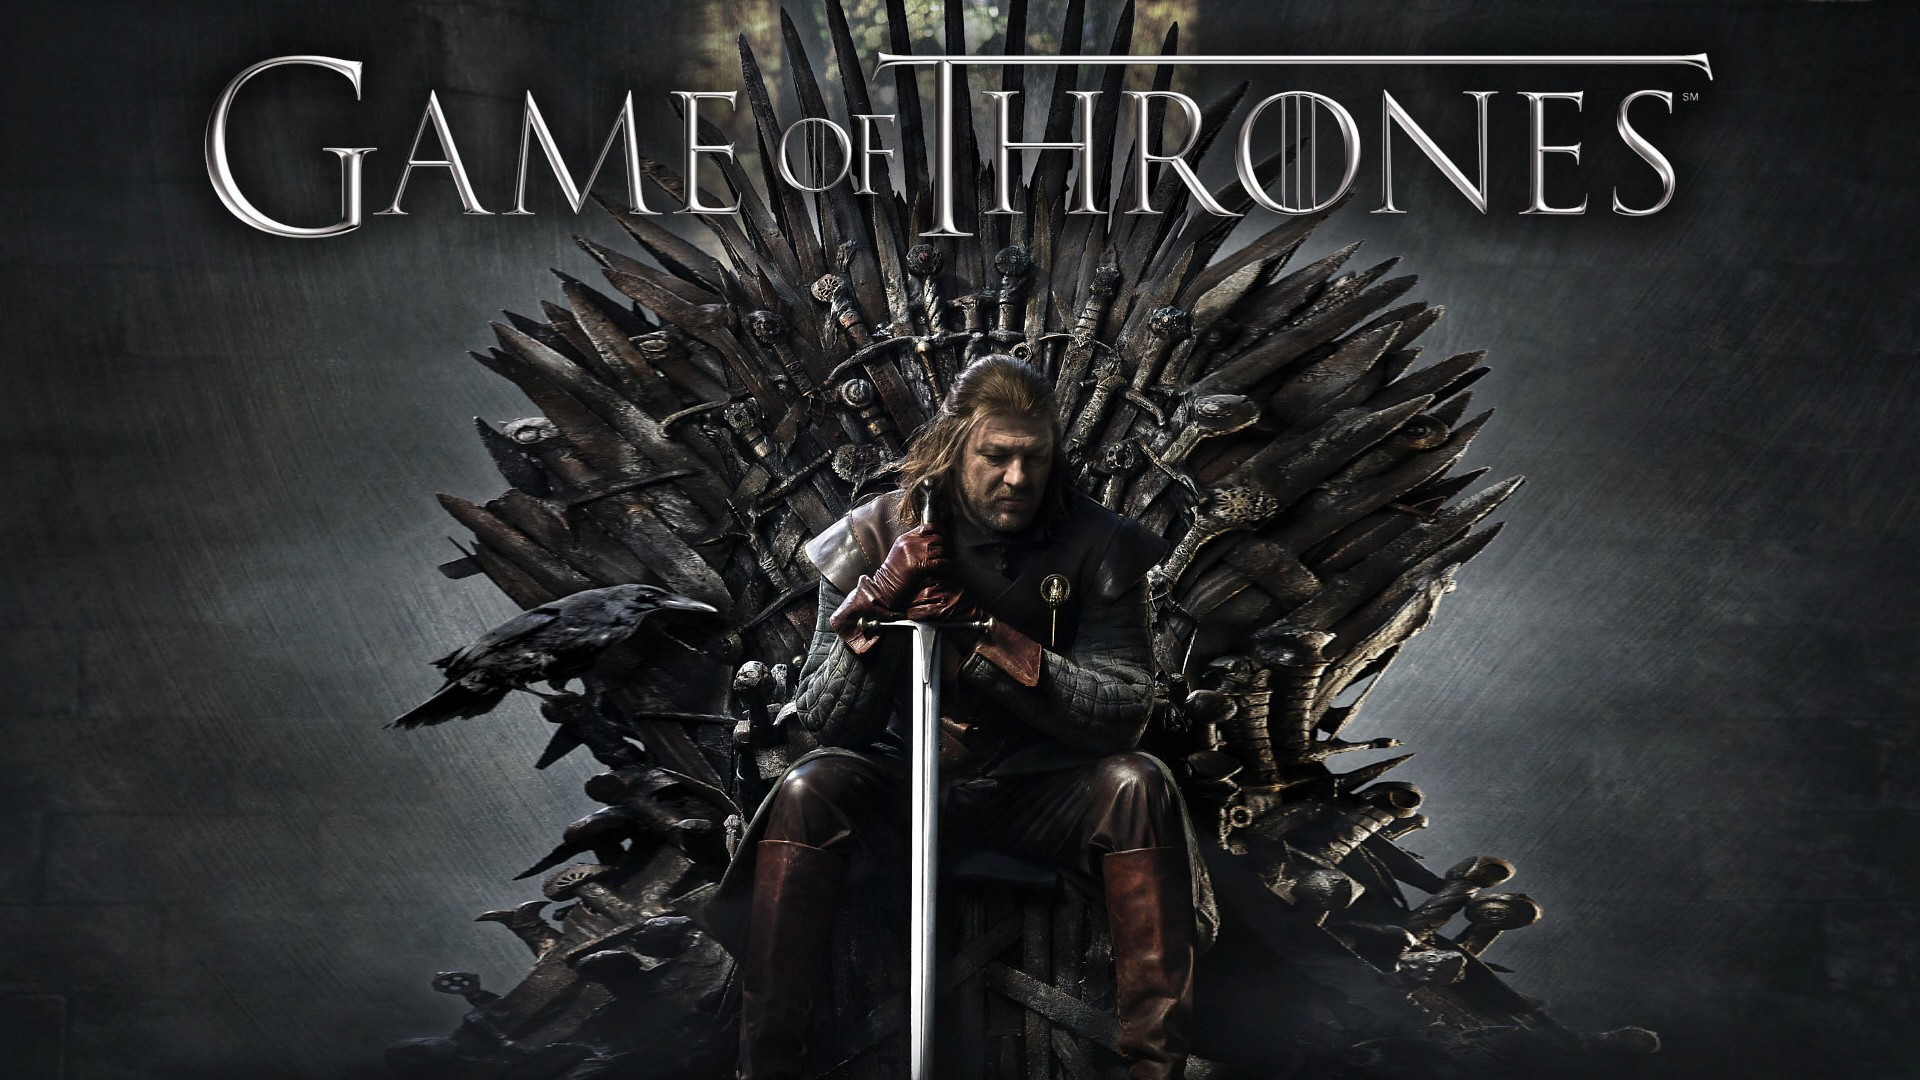 Download 'game of thrones season 1 hd background' HD wallpaper